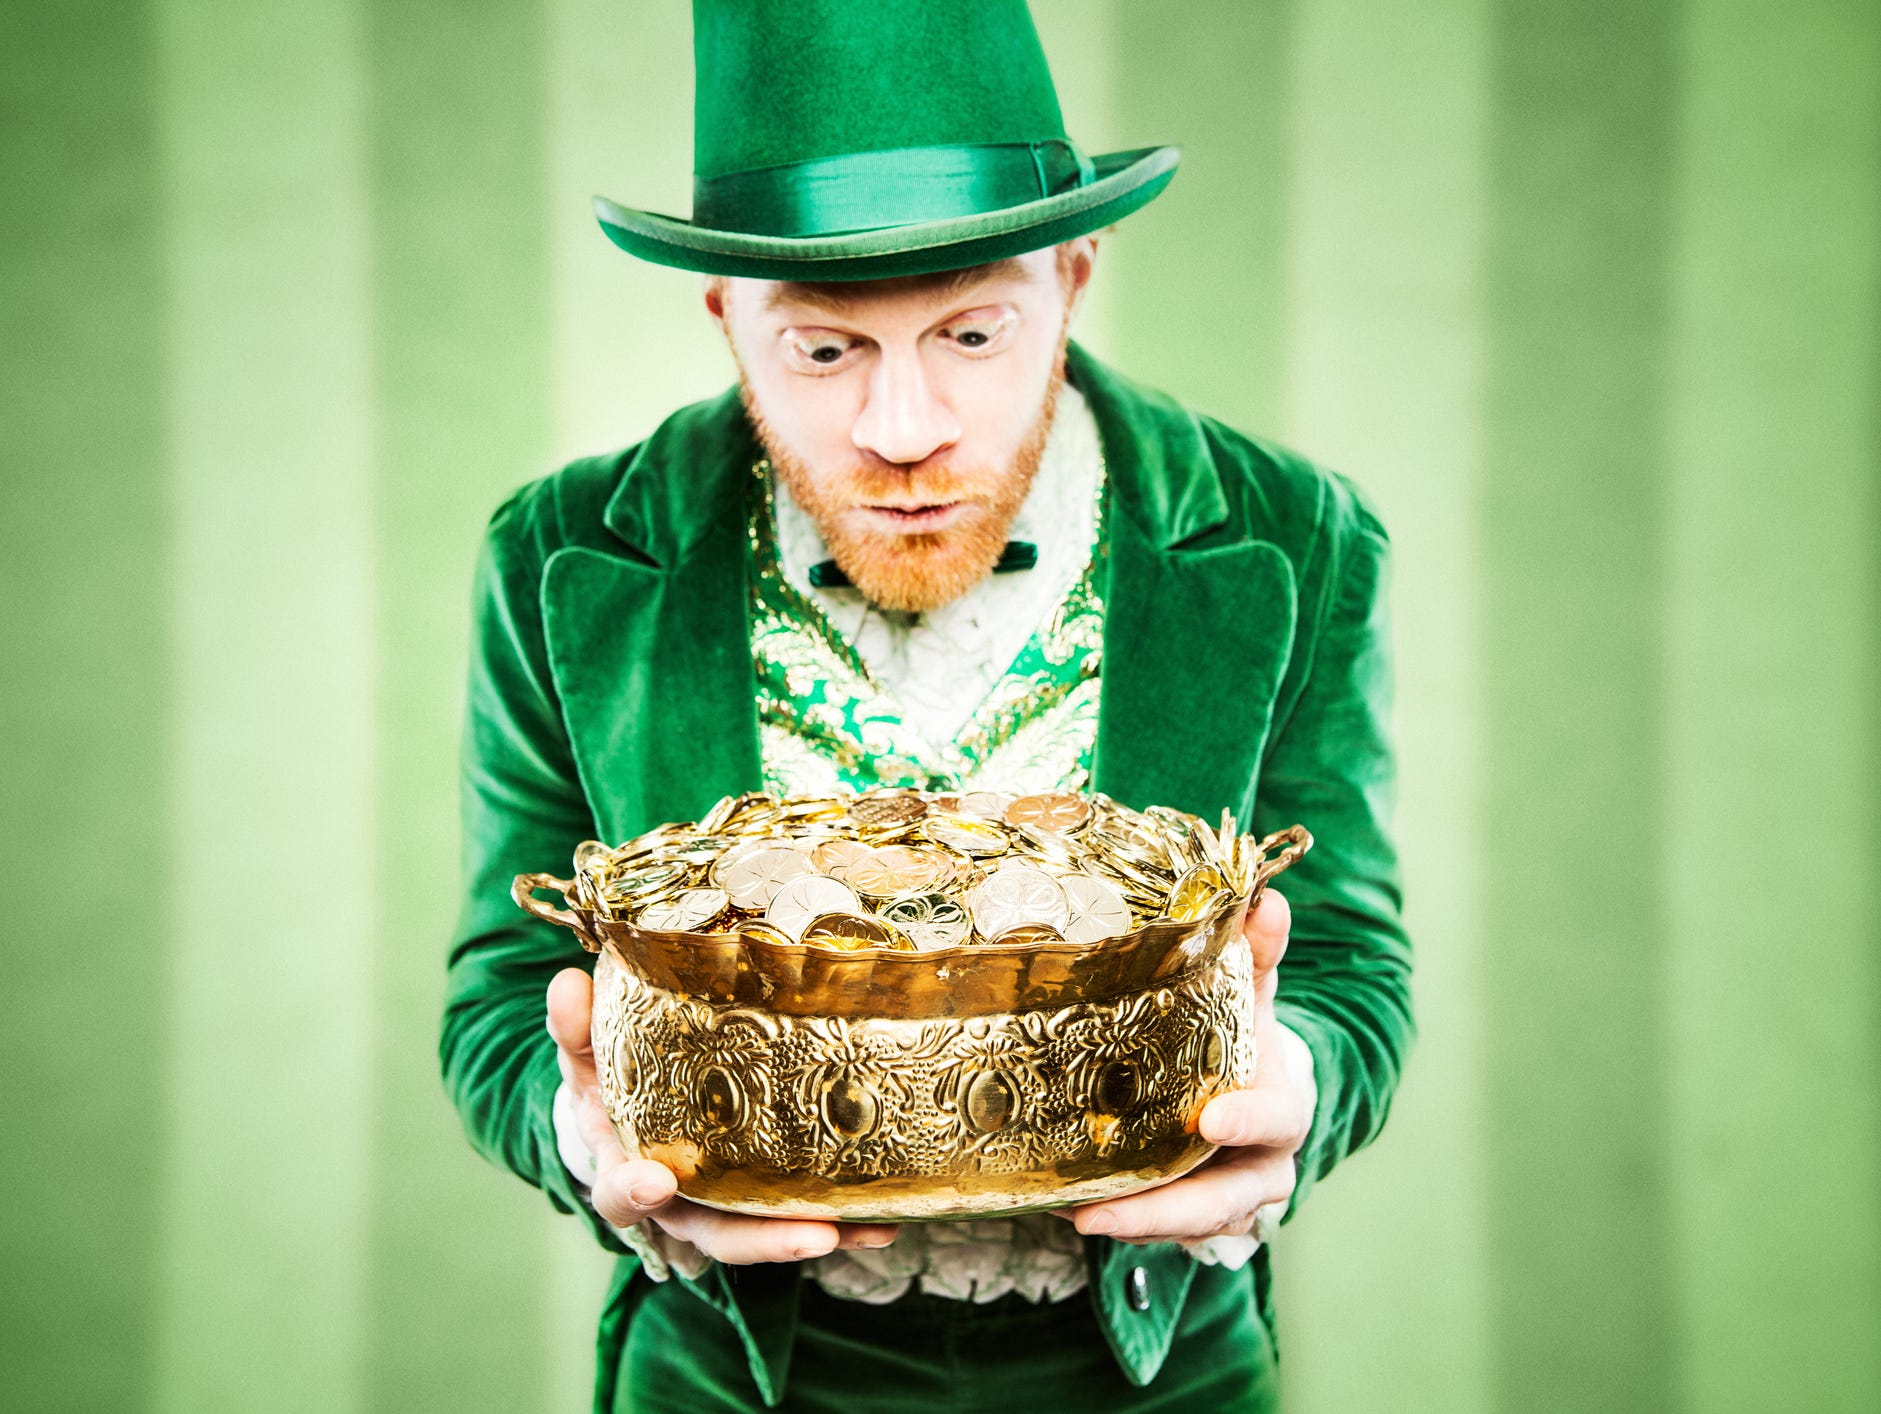 Enter to win a $50 gift card to celebrate on St. Patty's Day!